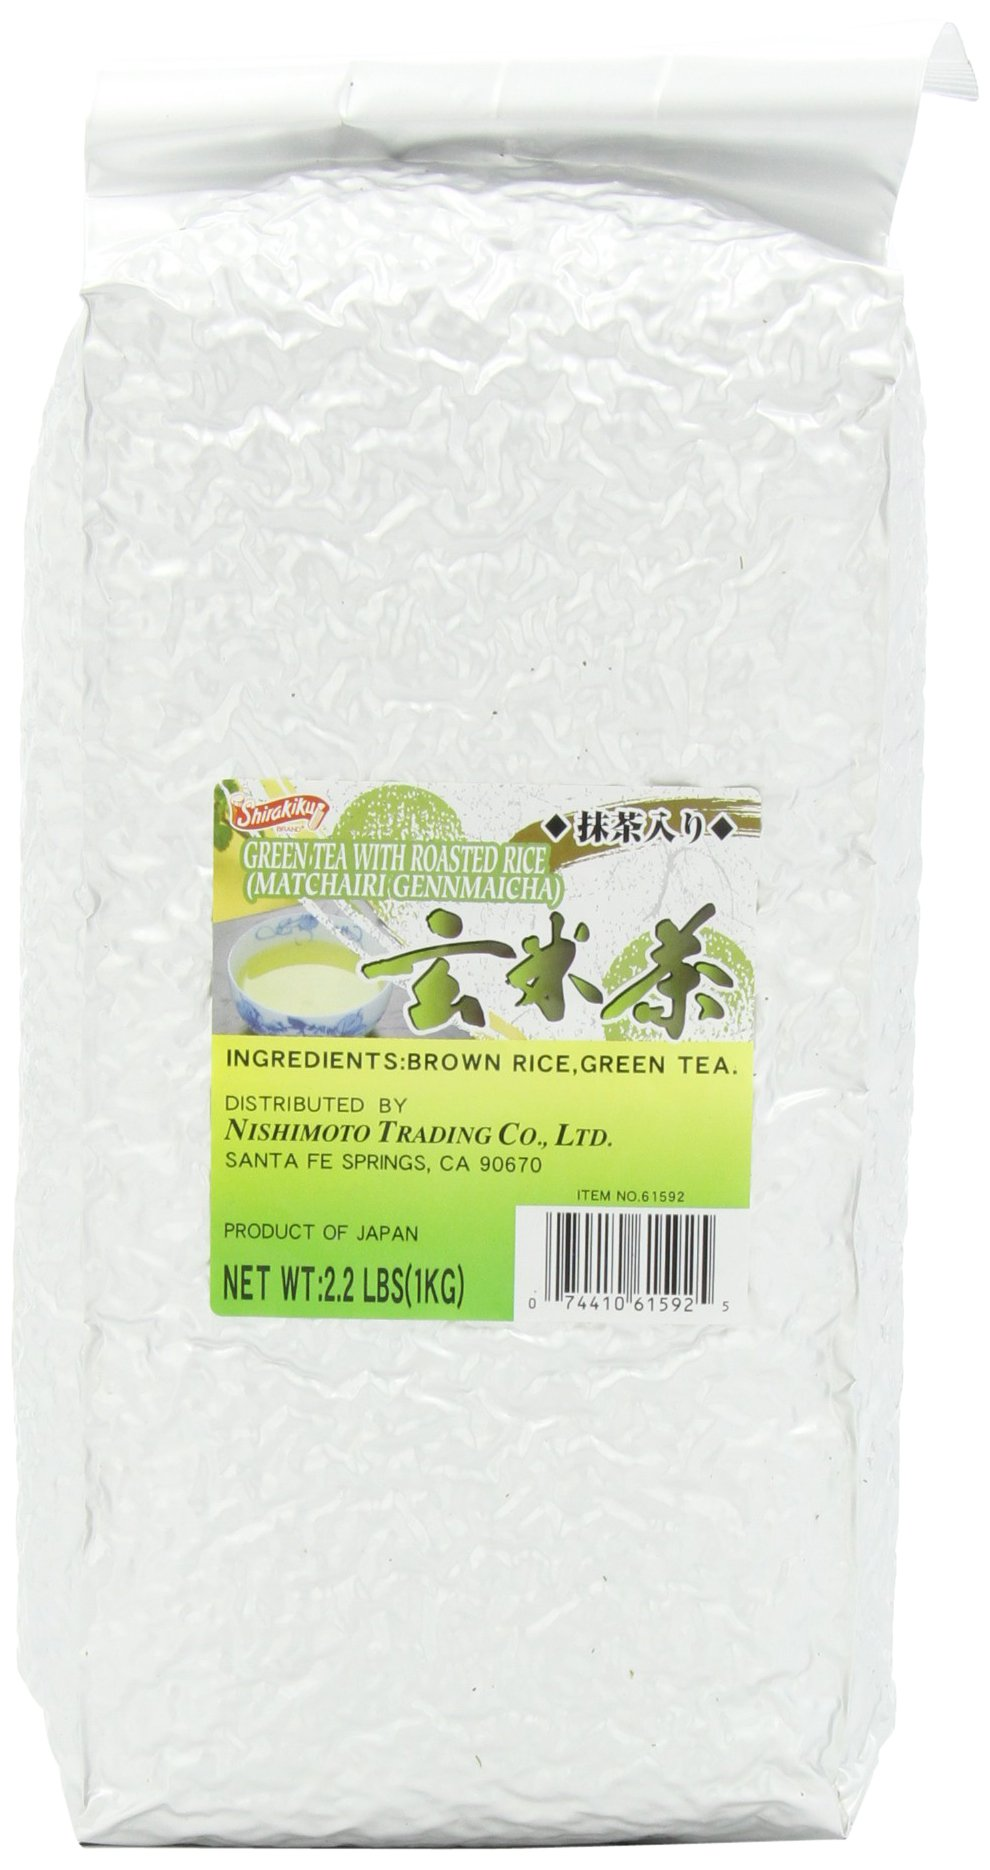 Shirakiku Green Tea with Roasted Rice, Matchairi , Genmaicha, 2.2-Pound Packages (Pack of 2)